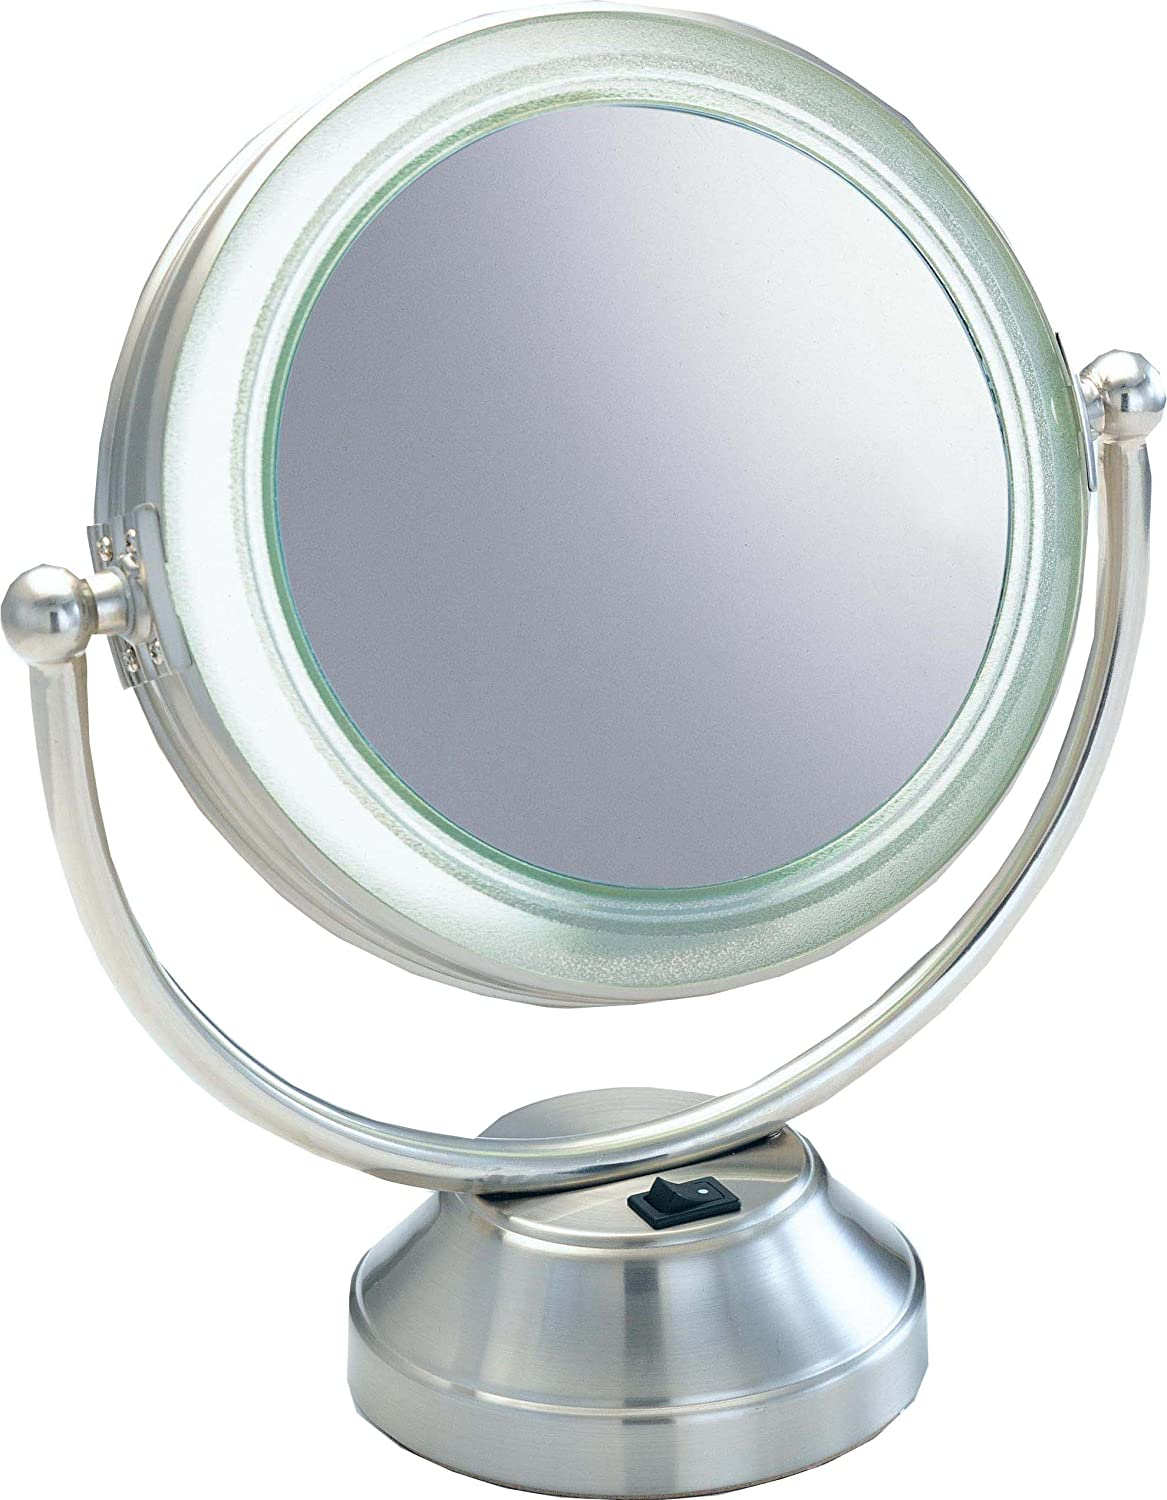 Amazon fluorescent coolitetm lighted 8 12 double sided amazon fluorescent coolitetm lighted 8 12 double sided swivel vanity cosmetic mirror 8x plus 1x in satin nickel wall mounted mirrors beauty mozeypictures Images